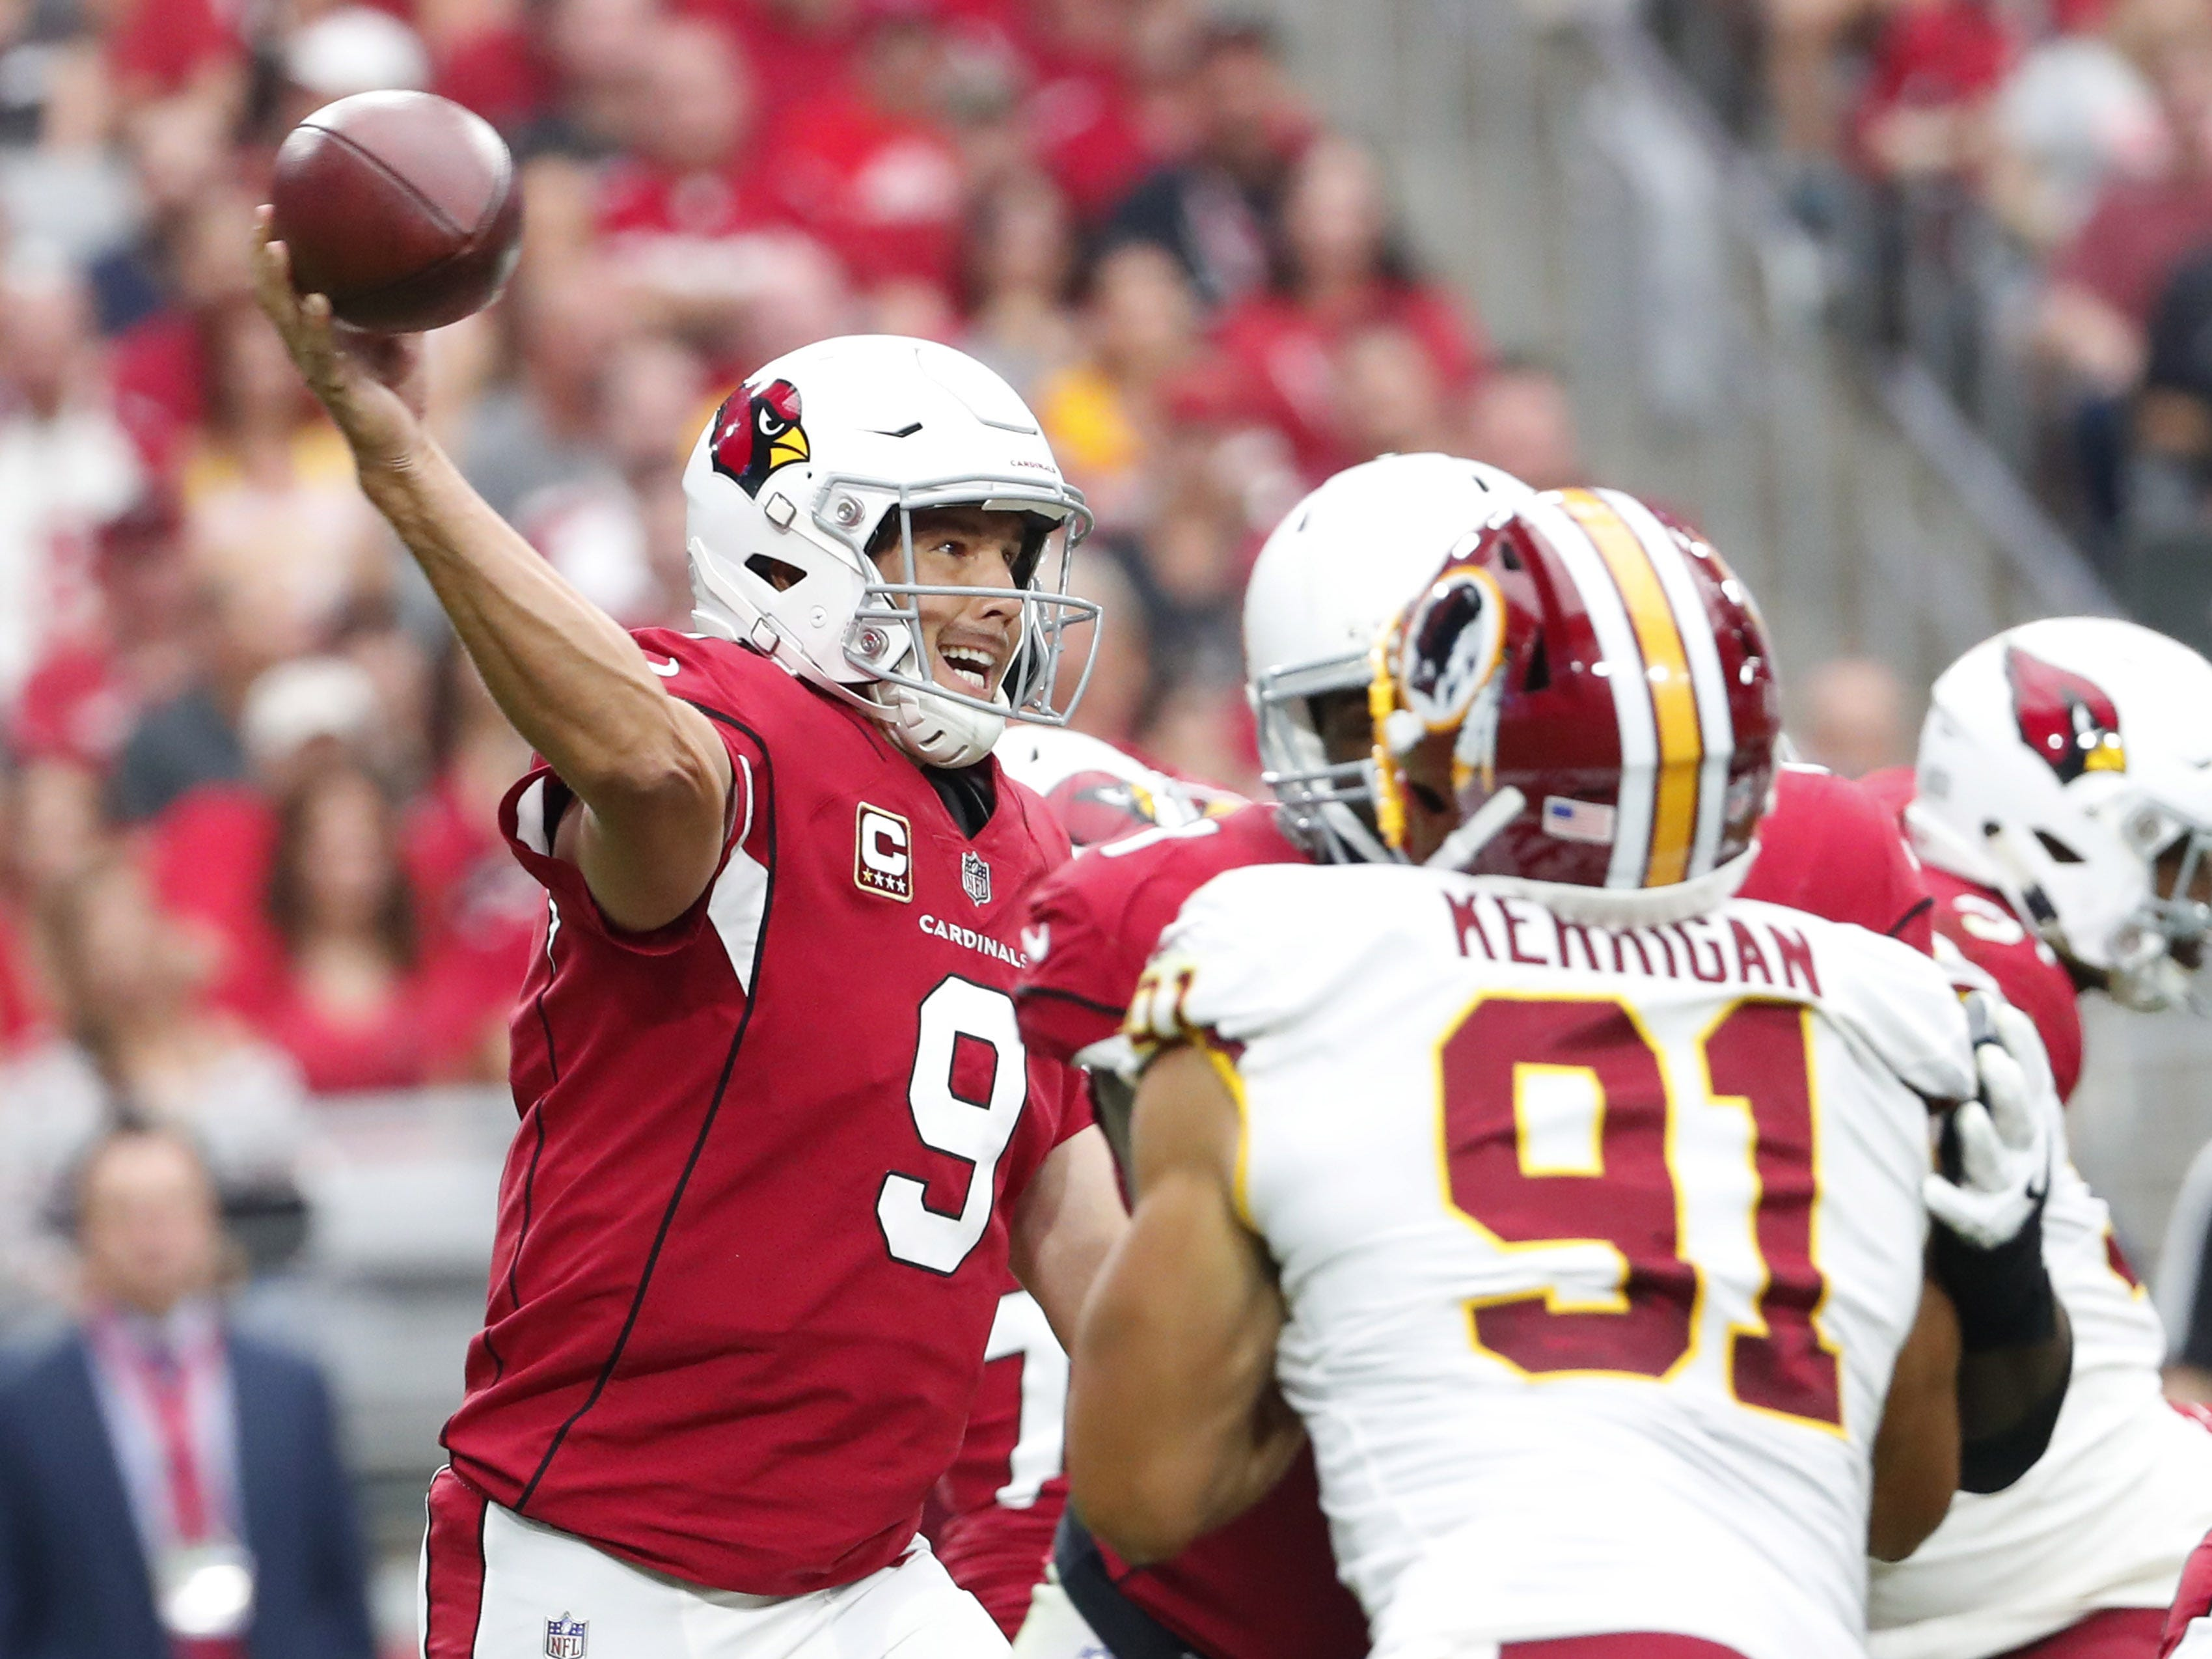 Arizona Cardinals quarterback Sam Bradford (9) throws a pass against the Washington Redskins during the second quarter at State Farm Stadium in Glendale, Ariz. September 9. 2018.